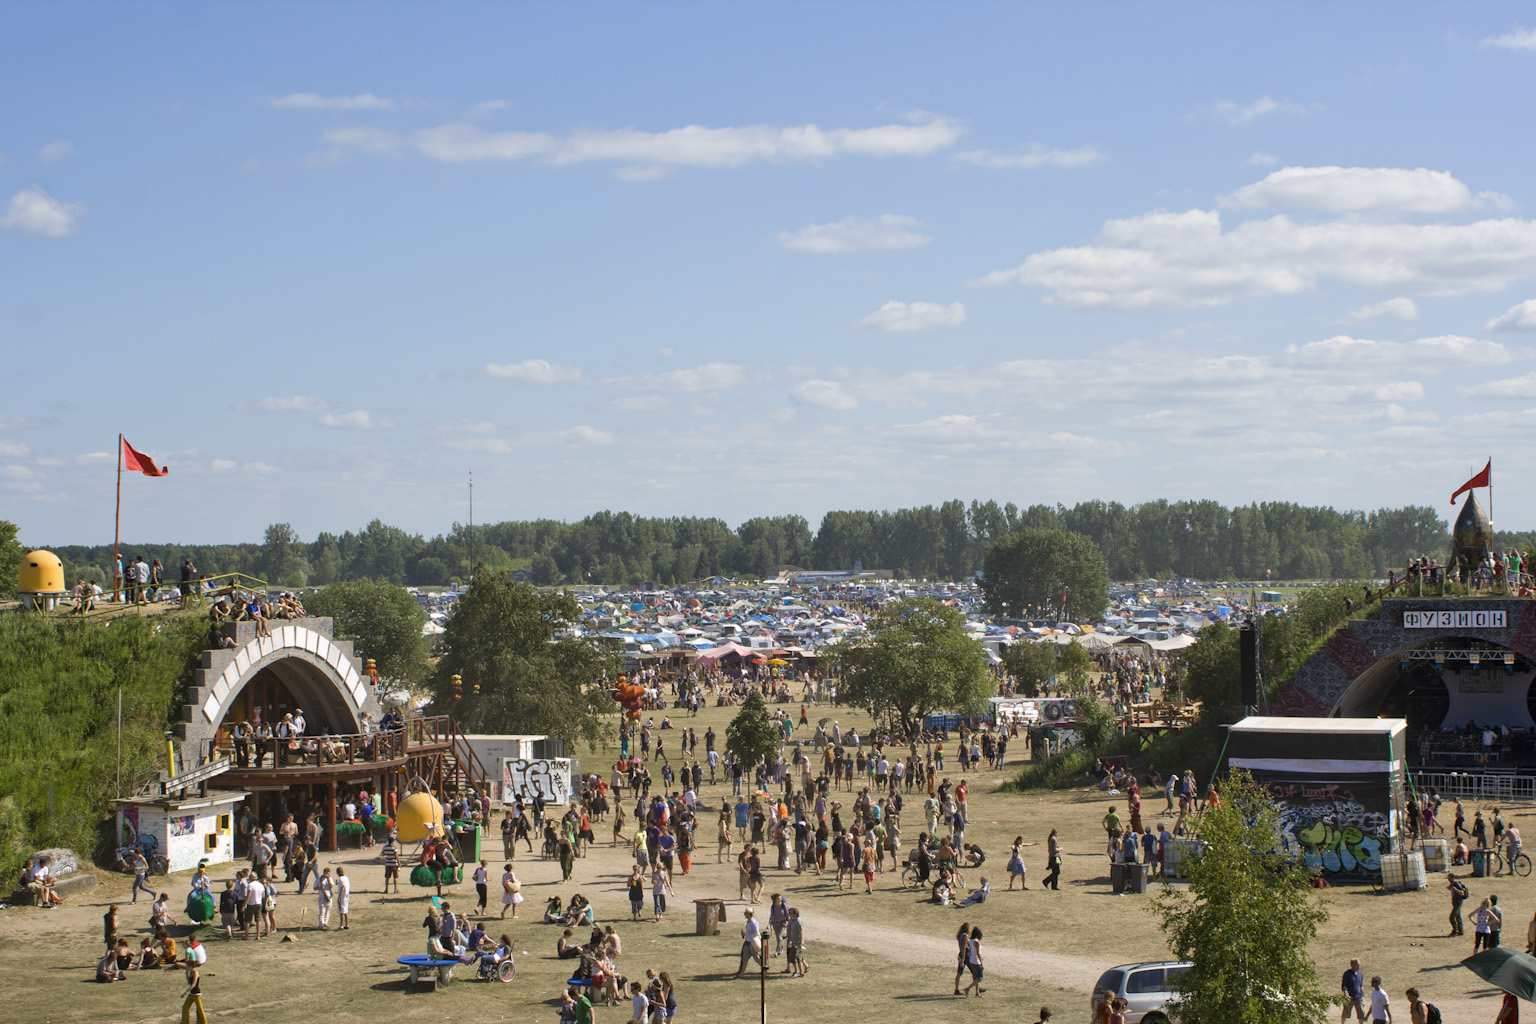 Wide view of the Fusion Festival grounds on a sunny day